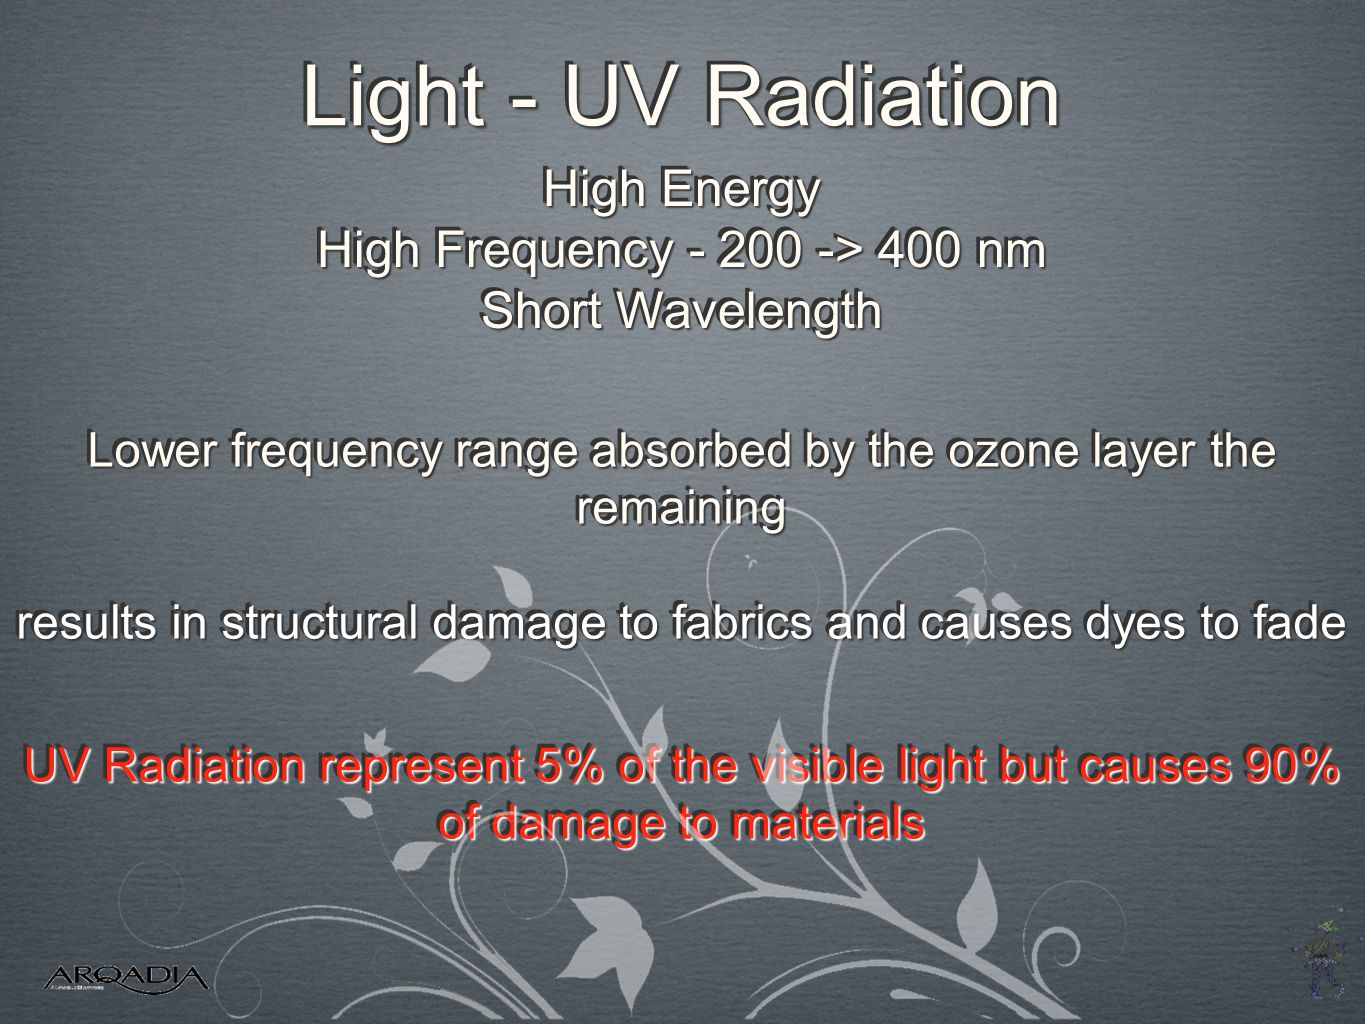 Light - UV Radiation High Energy High Frequency - 200 -> 400 nm Short Wavelength High Energy High Frequency - 200 -> 400 nm Short Wavelength UV Radiat